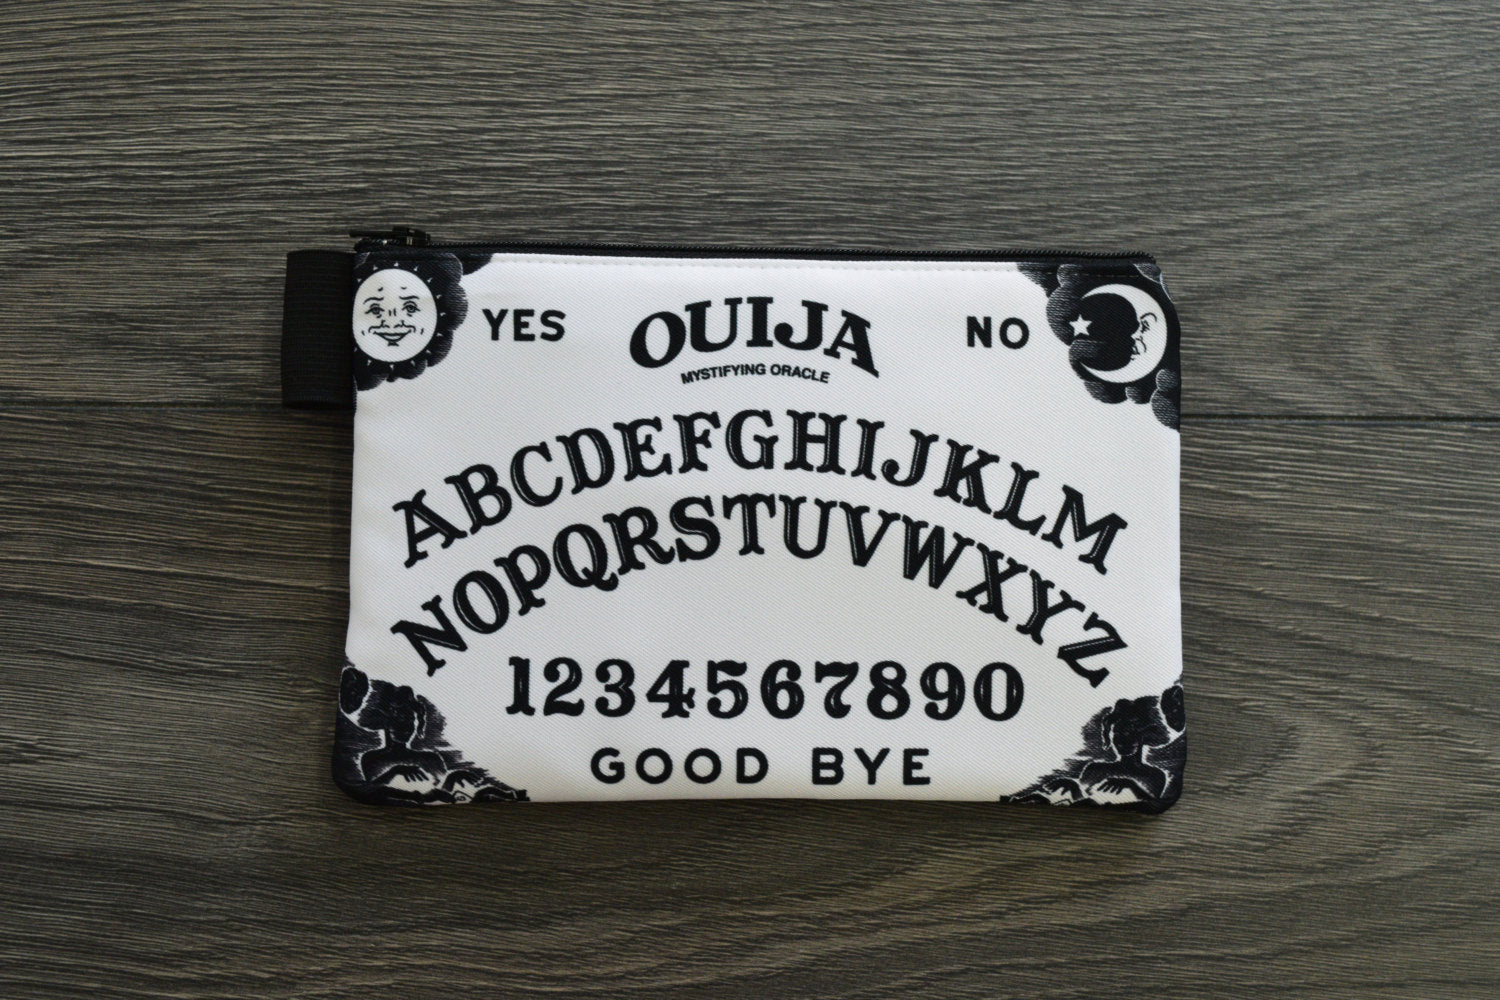 ouija board print - set of 2 lined twill pencil cases - double sided print - black and white edition